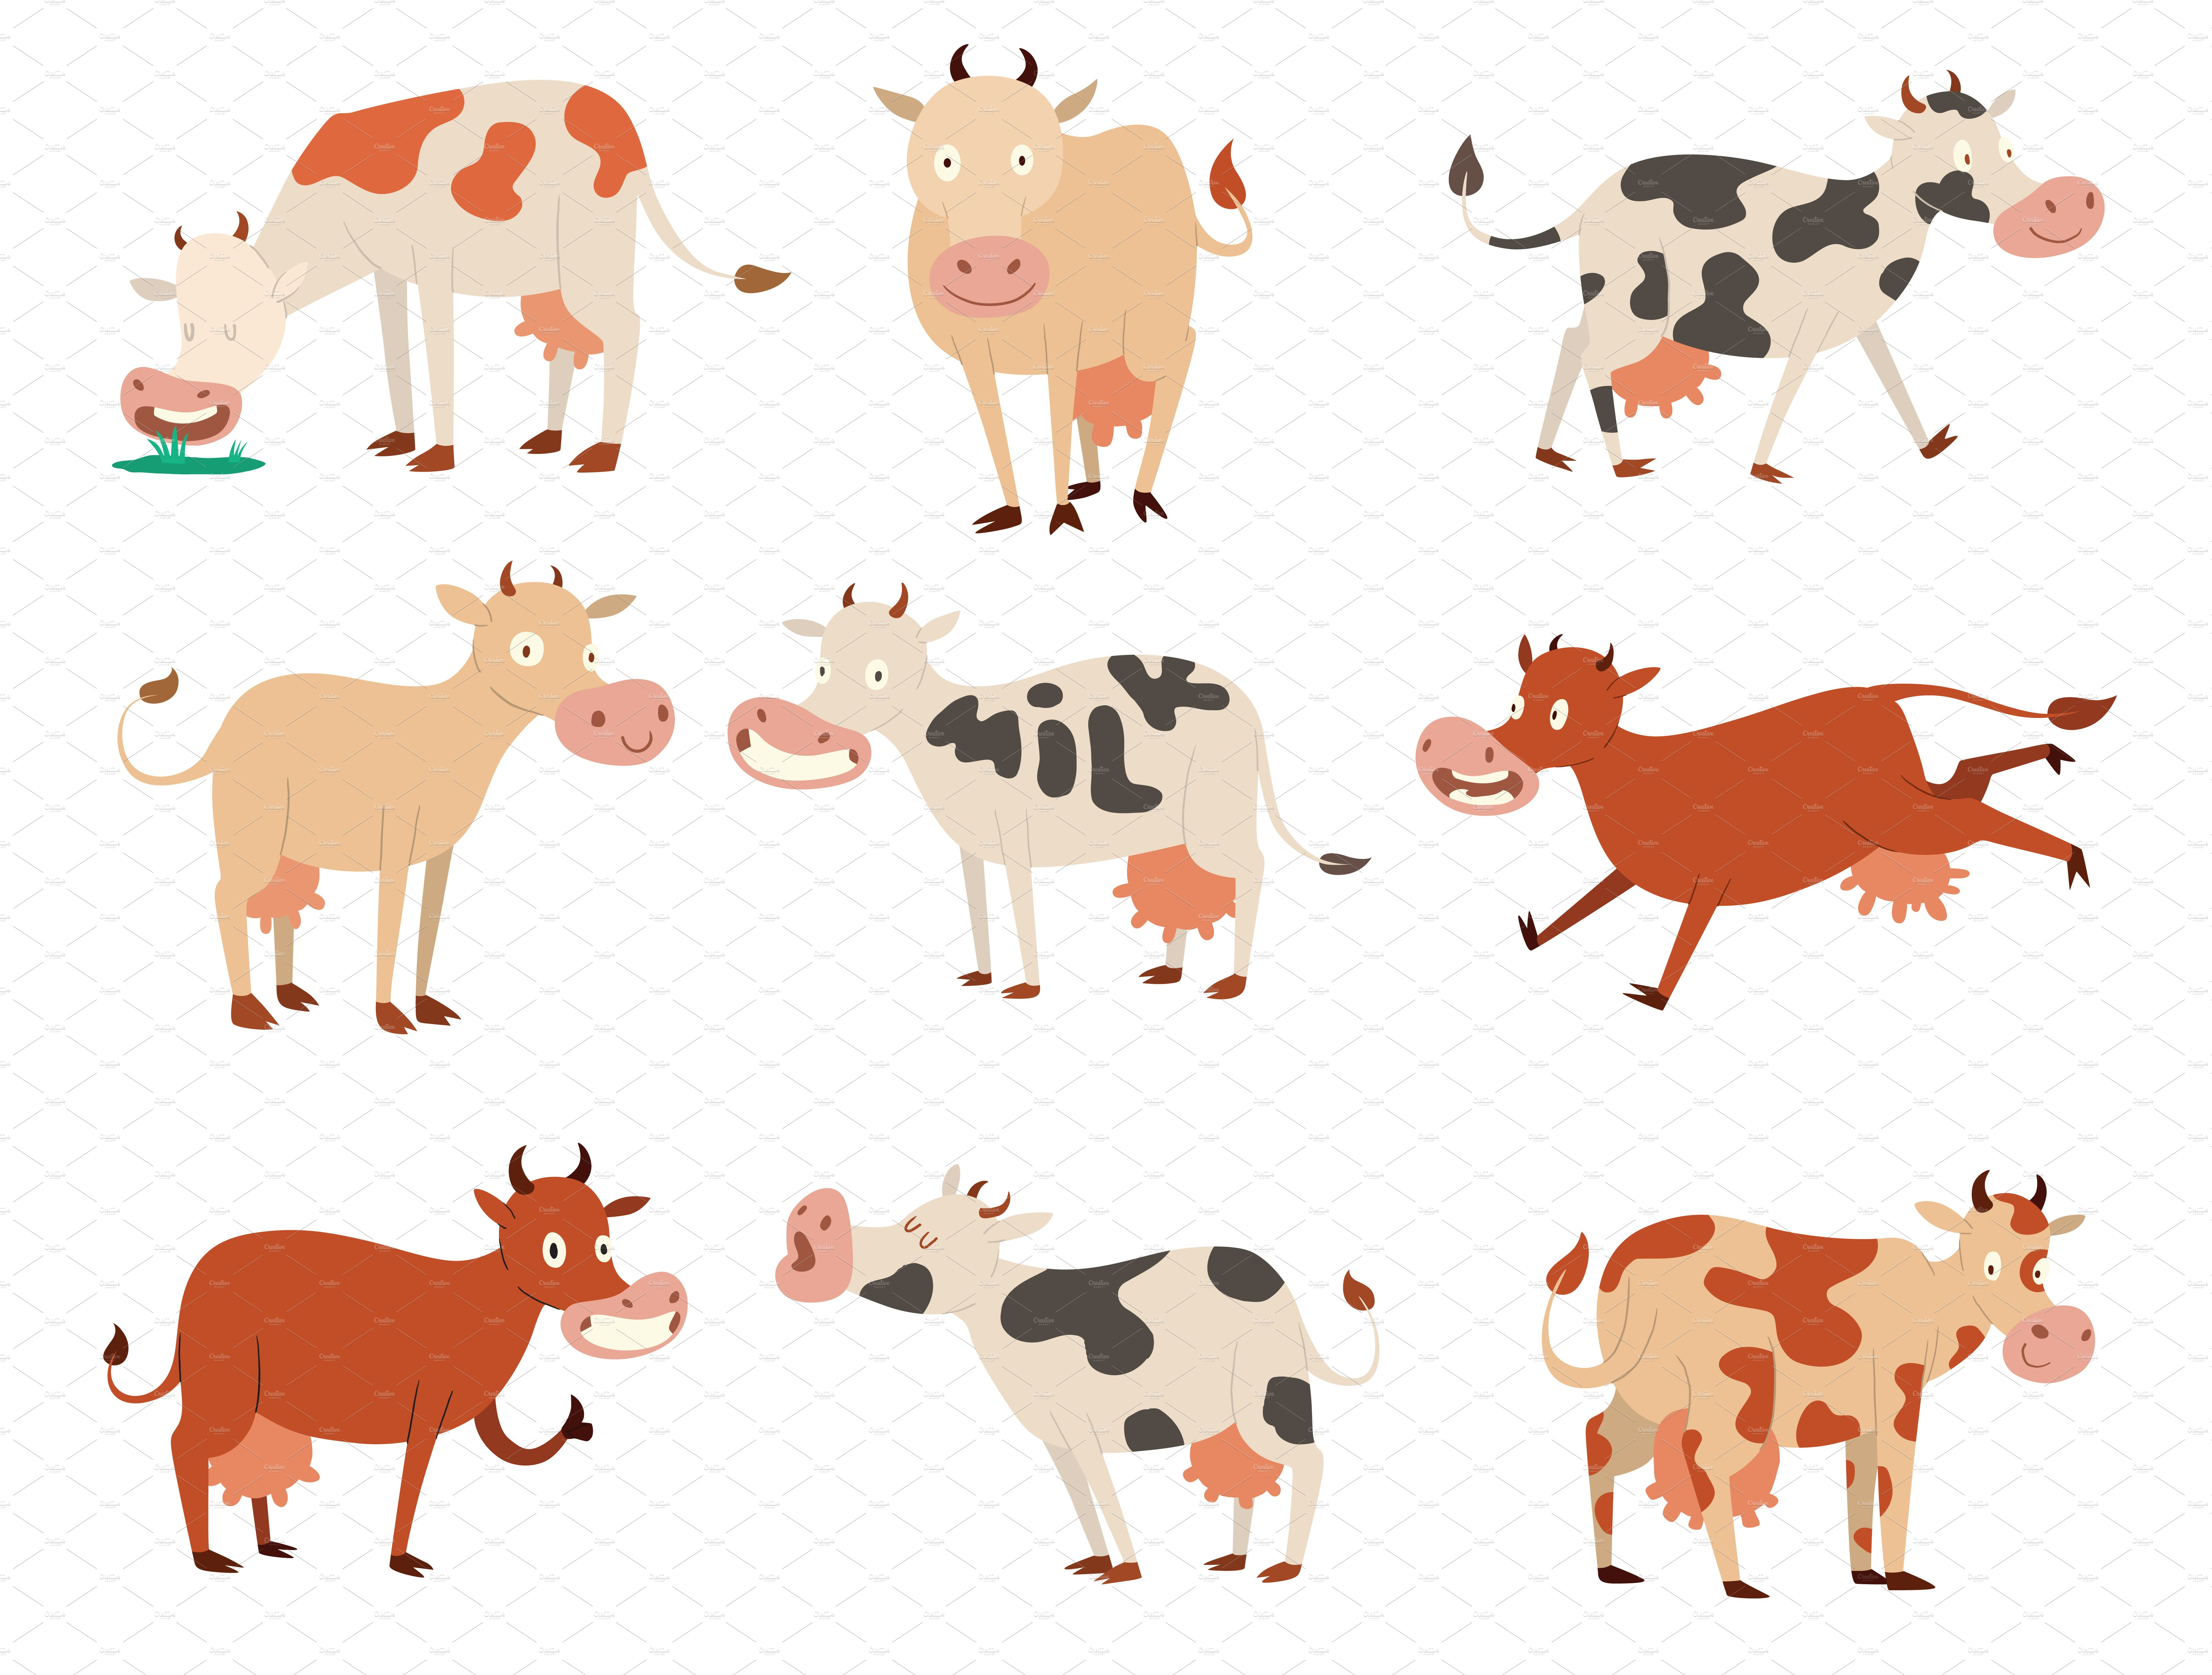 Cartoon cow characters ~ Illustrations ~ Creative Market